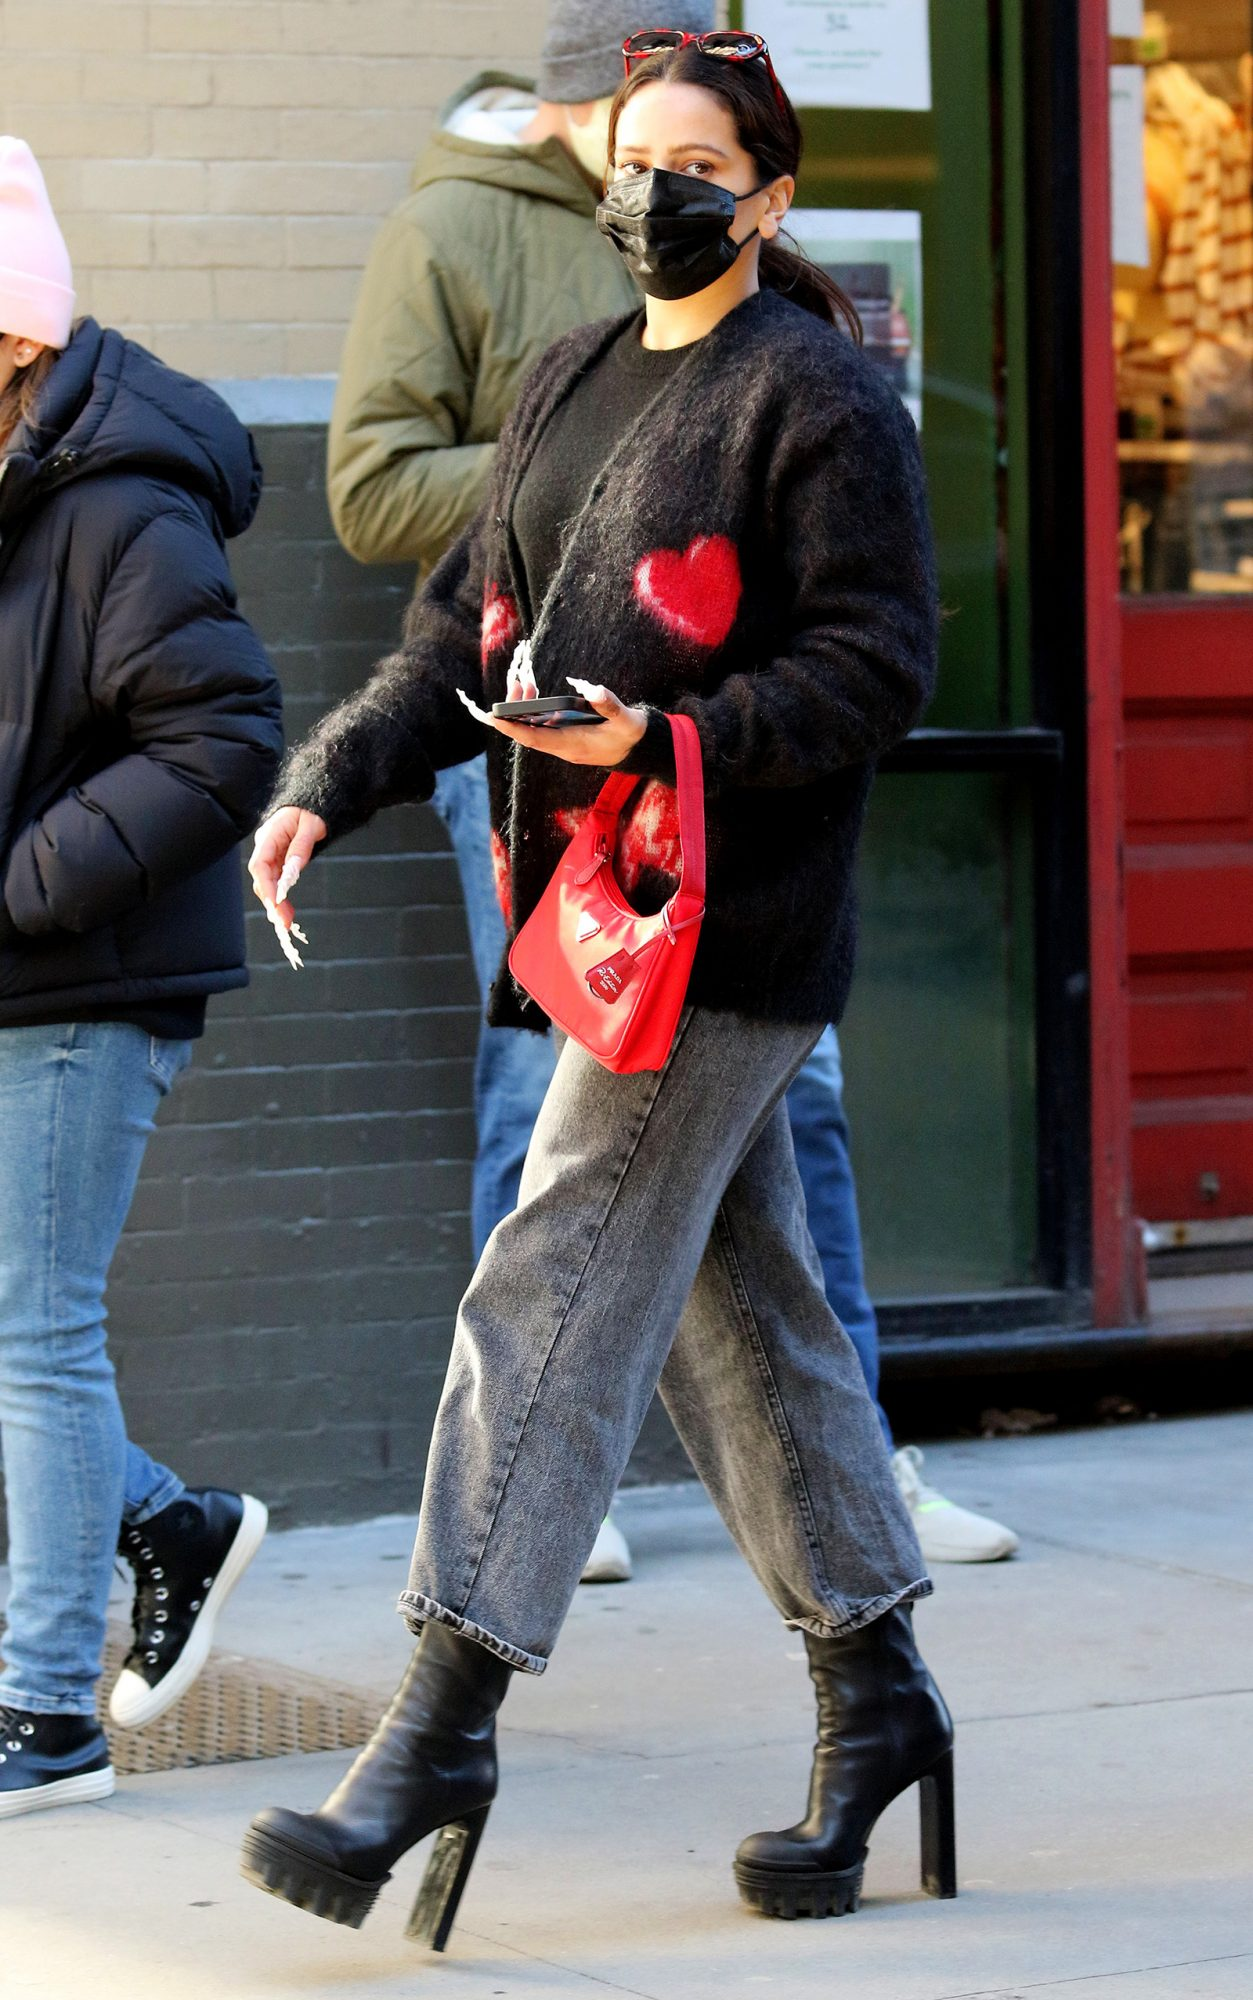 Singer ROSALIA eats pizza while looking stylish with high heel boots and sporting long nails in NYC